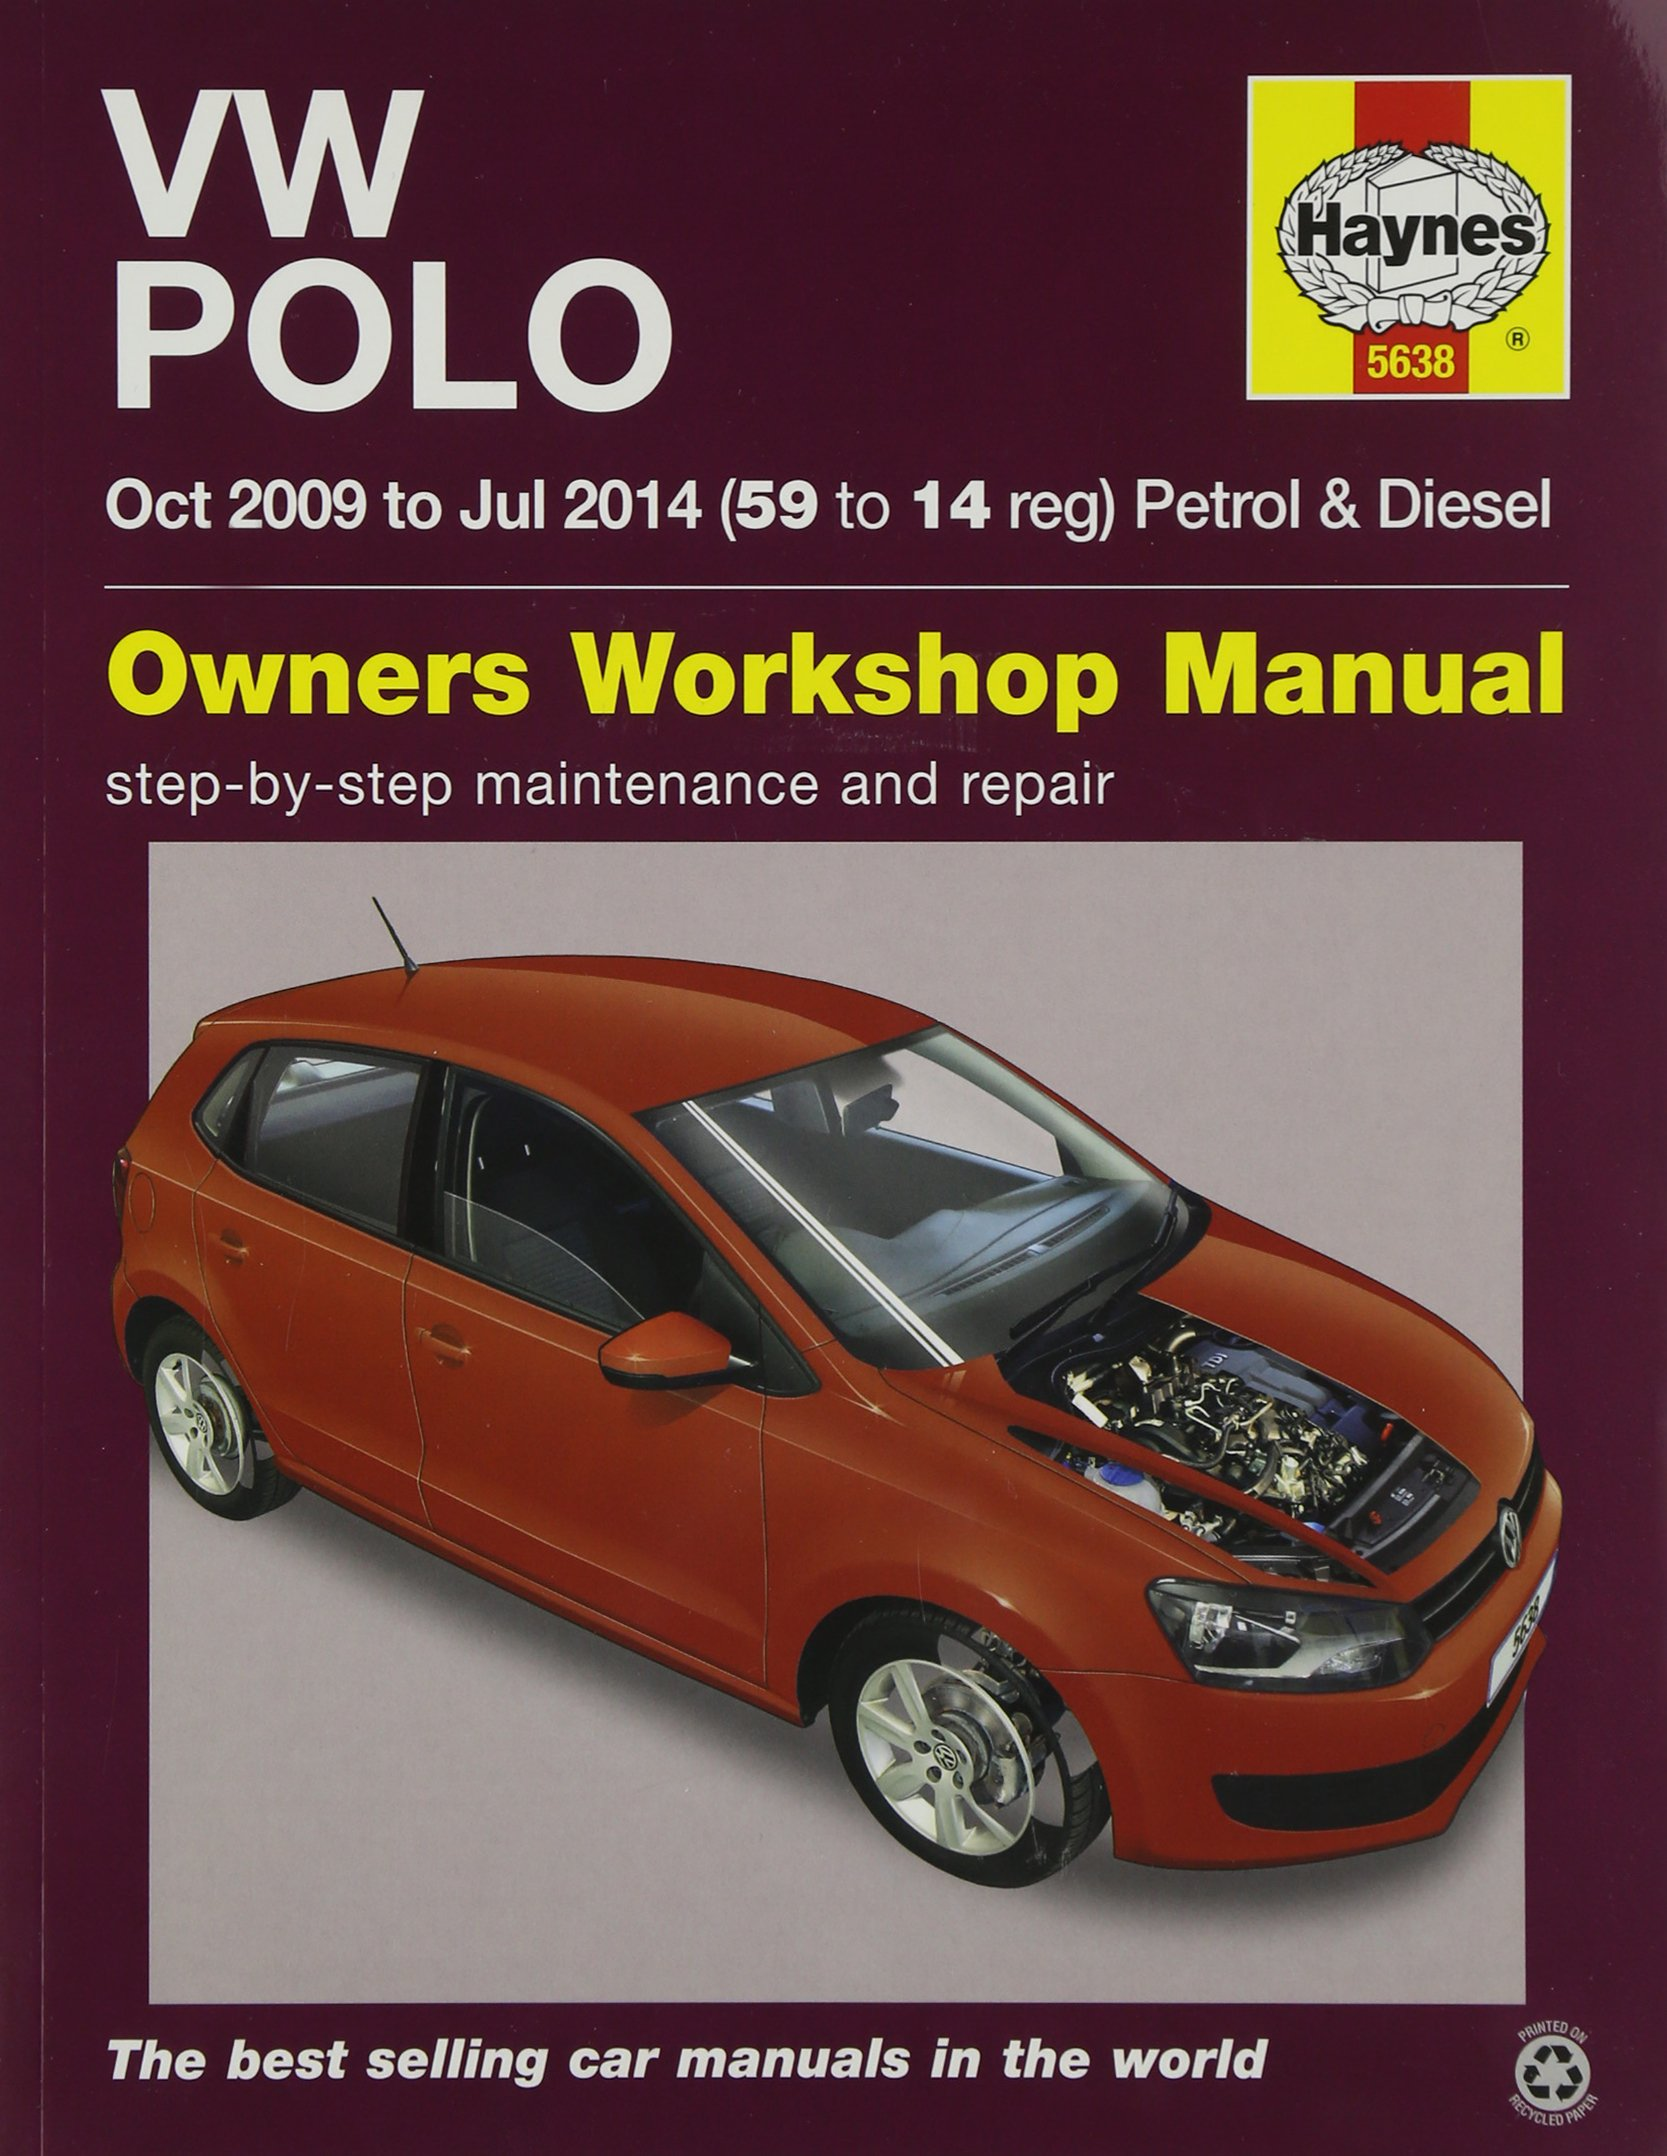 VW Polo Petrol And Diesel Oct 09 - Jul 14 59 To 14: 09-14: Amazon ...